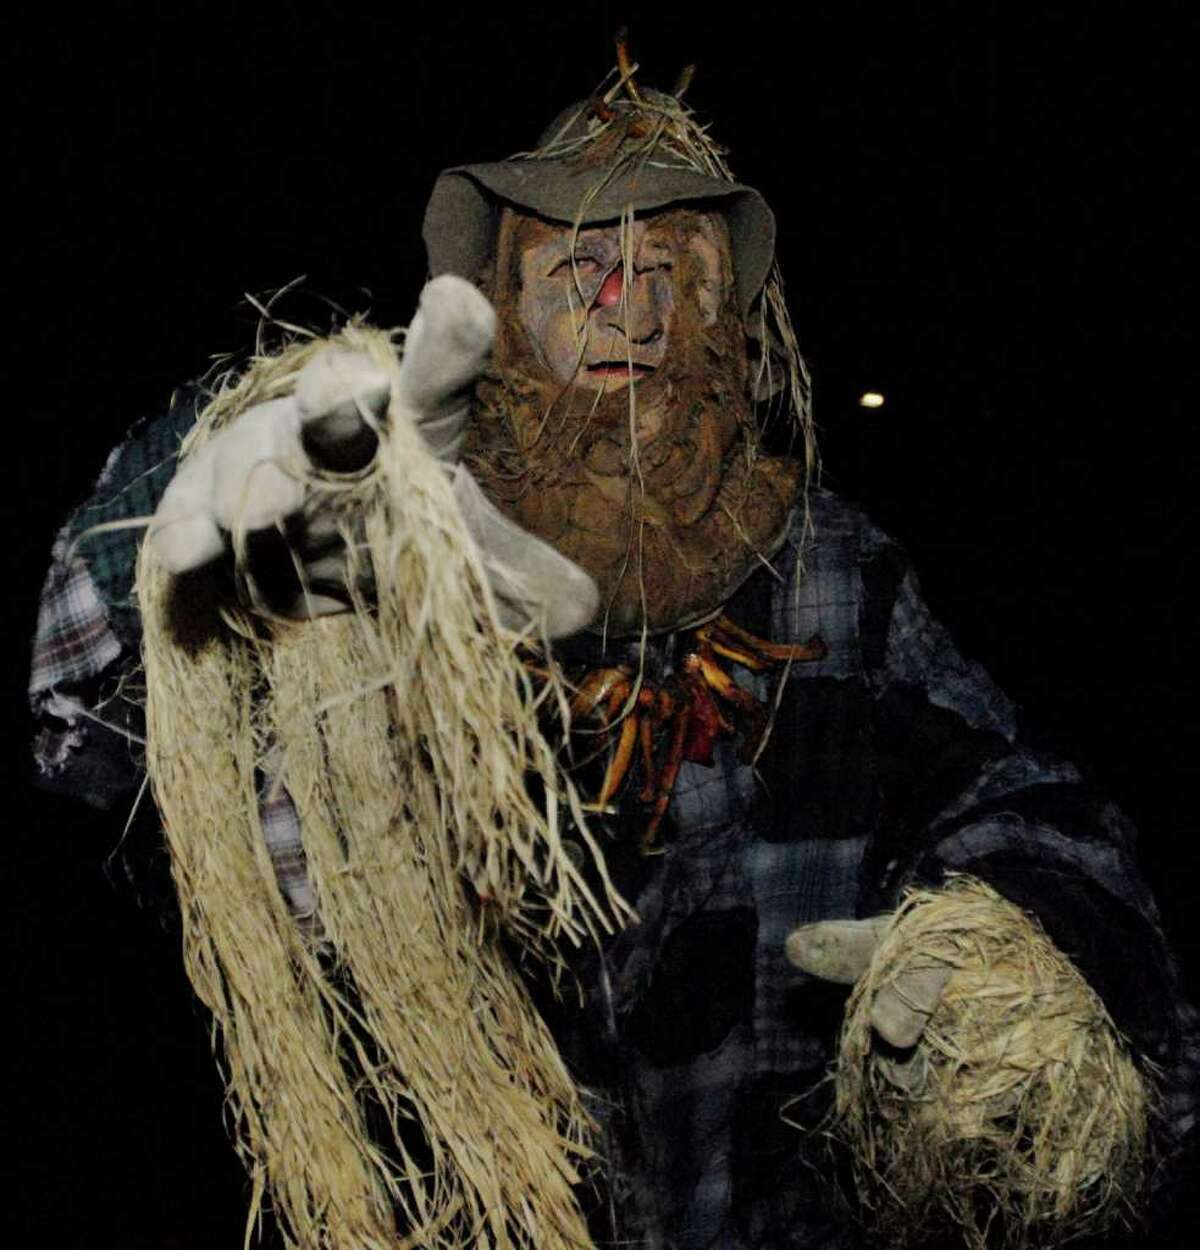 This Friday, Saturday and Sunday head to a haunted trail and hayride with creatures lurking at every corner in Shelton. Find out more.